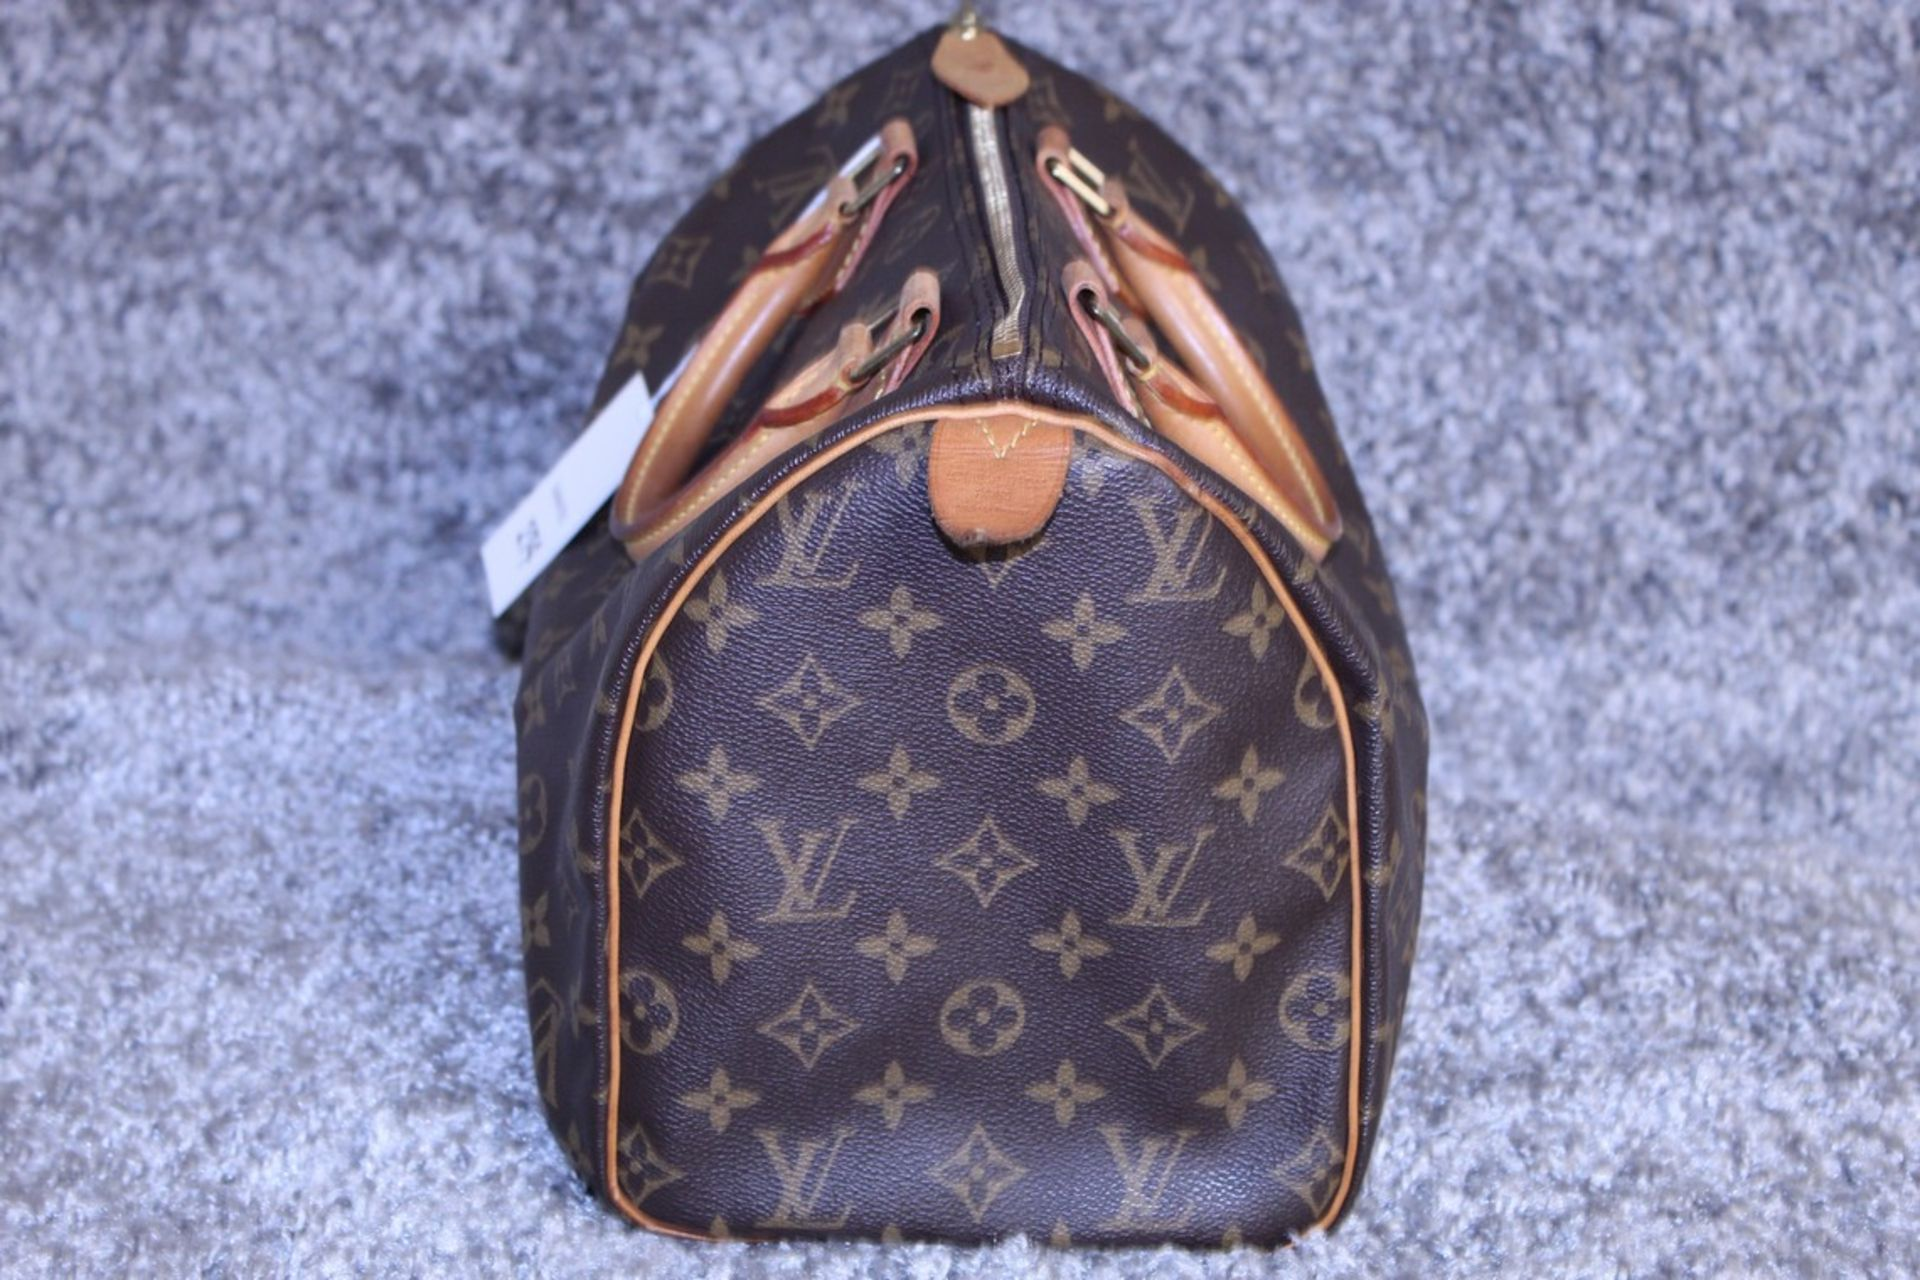 RRP £1,100.00 Made From Classic Monogram Canvas, The Speedy 35 Is A Stylish Handbag For Both - Image 2 of 3